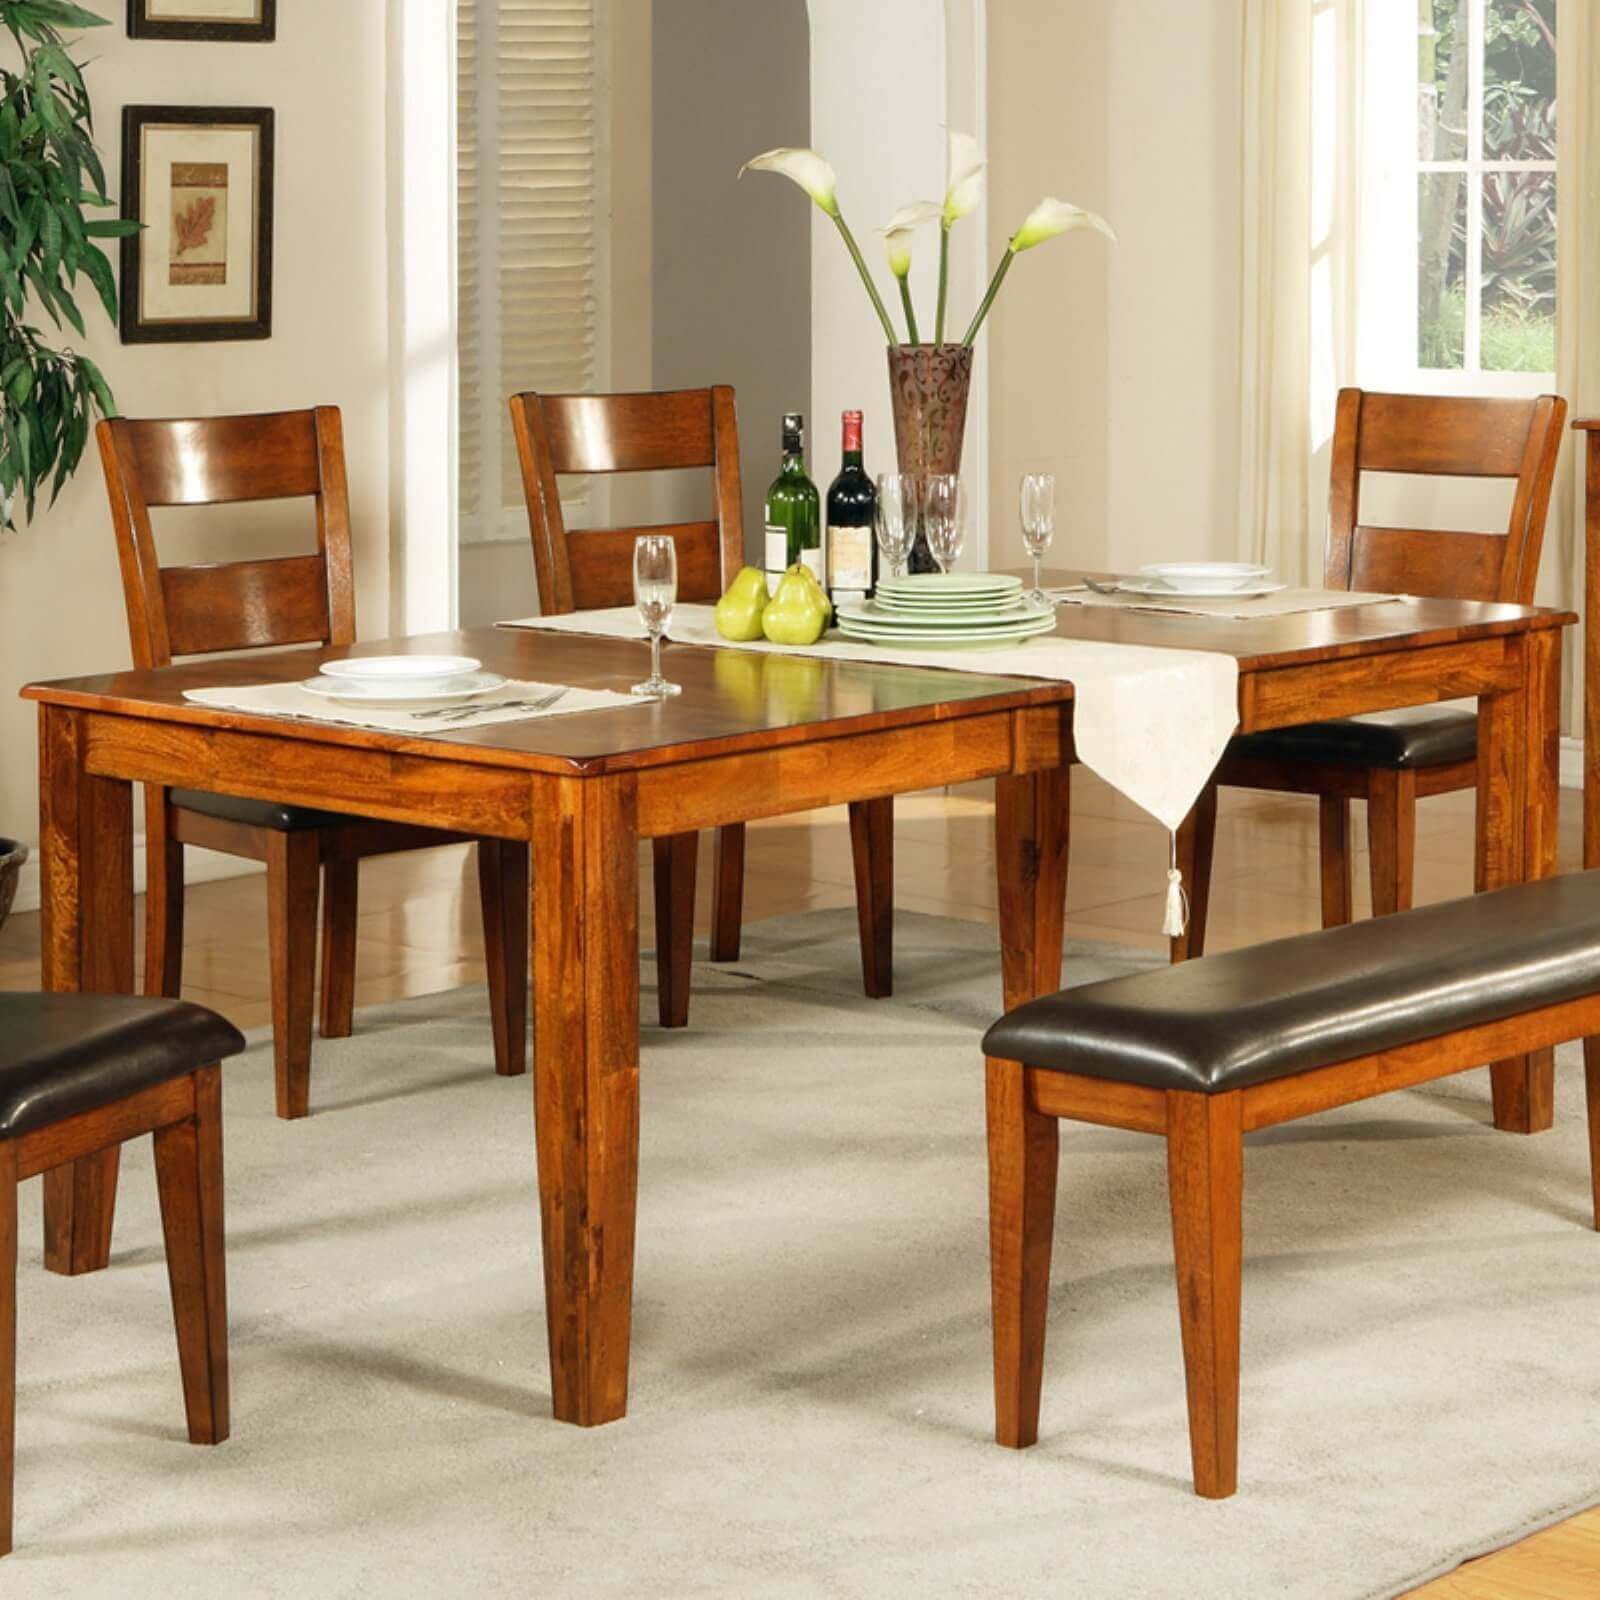 BENEFITS MANGO WOOD BUTTERFLY LEAF DINING TABLE